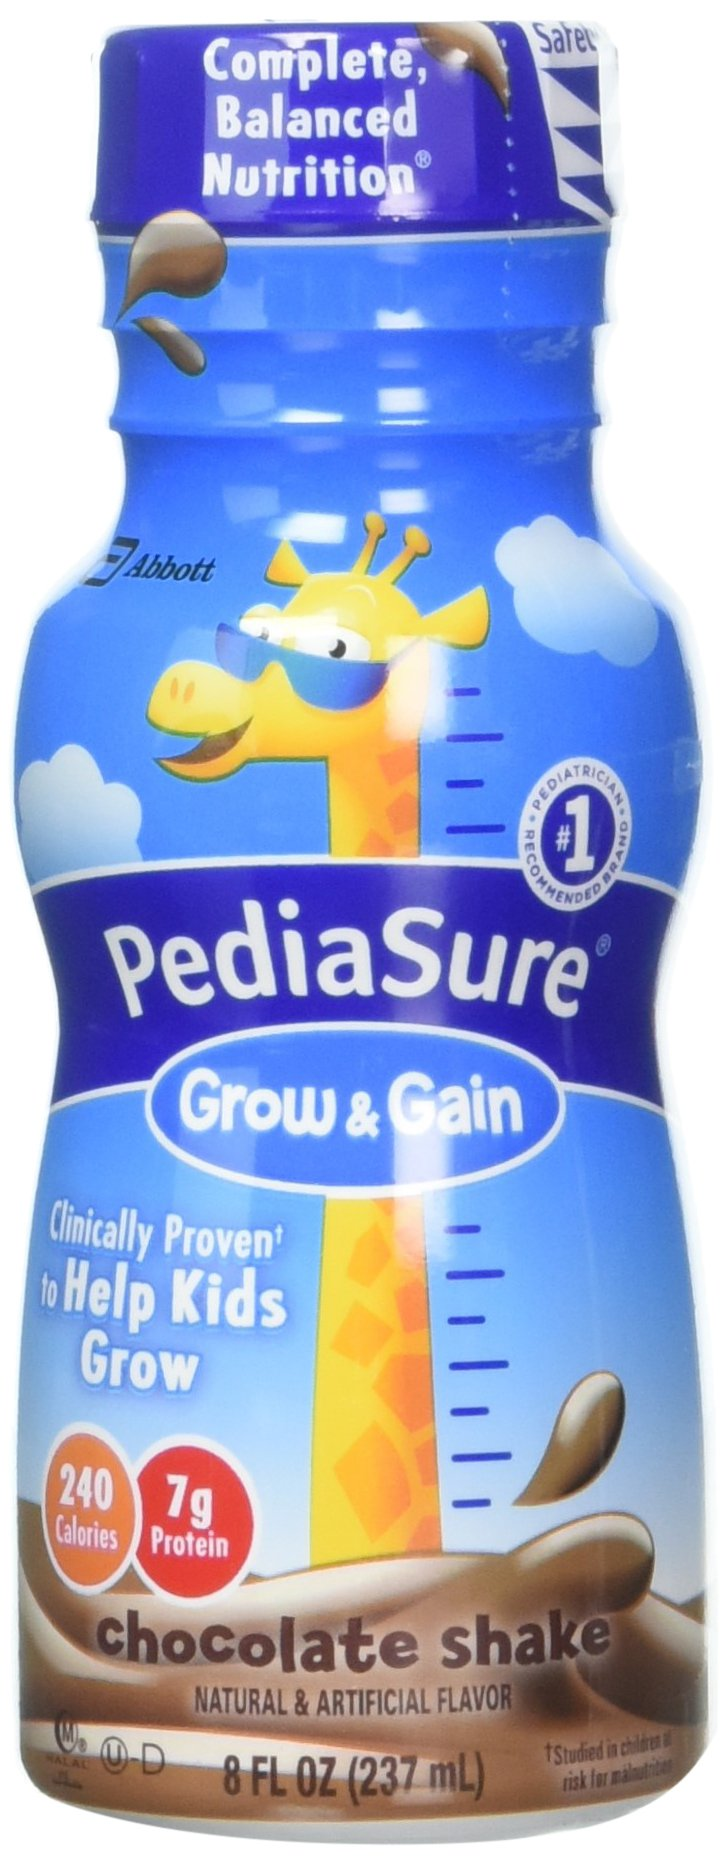 PediaSure Grow & Gain Nutrition Shake For Kids, Chocolate, 8 fl oz (Pack of 6)